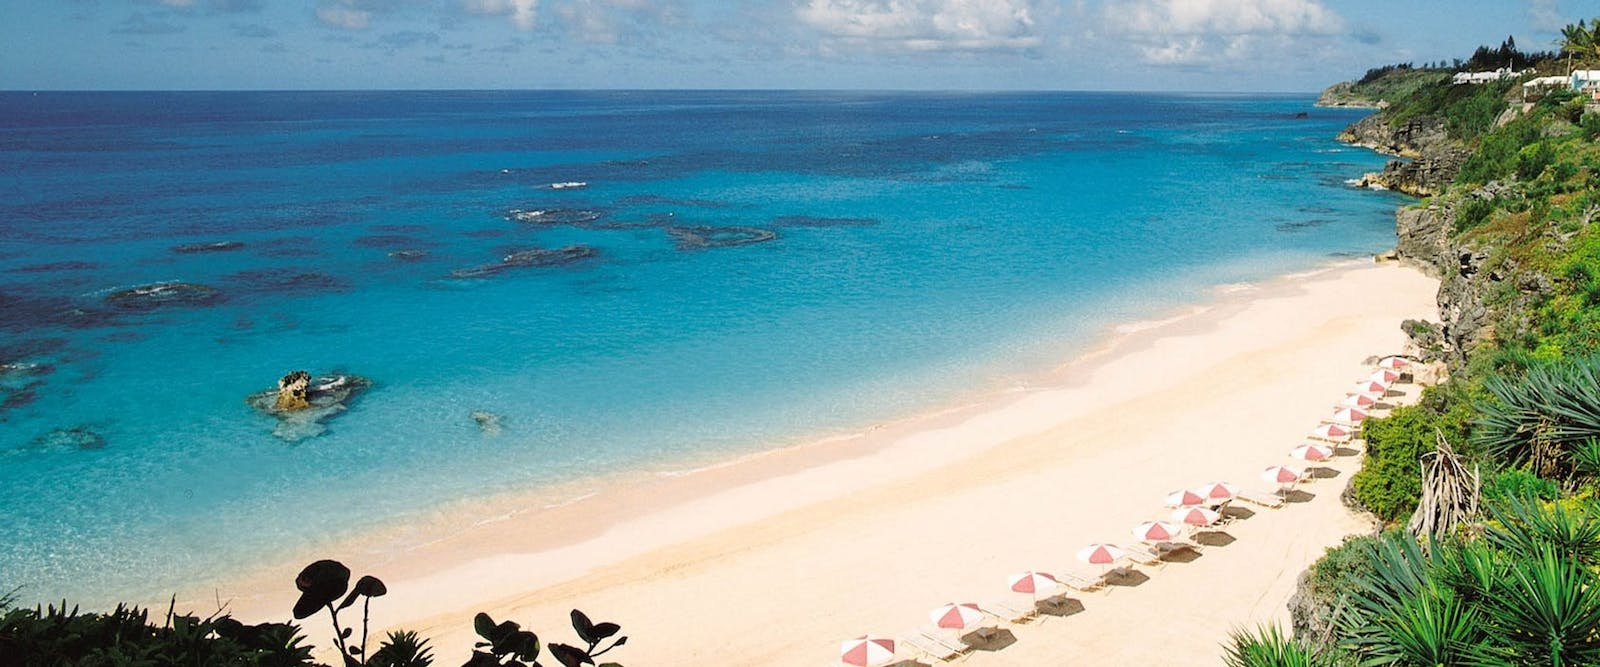 Beach at The Reefs Hotel & Club, Bermuda